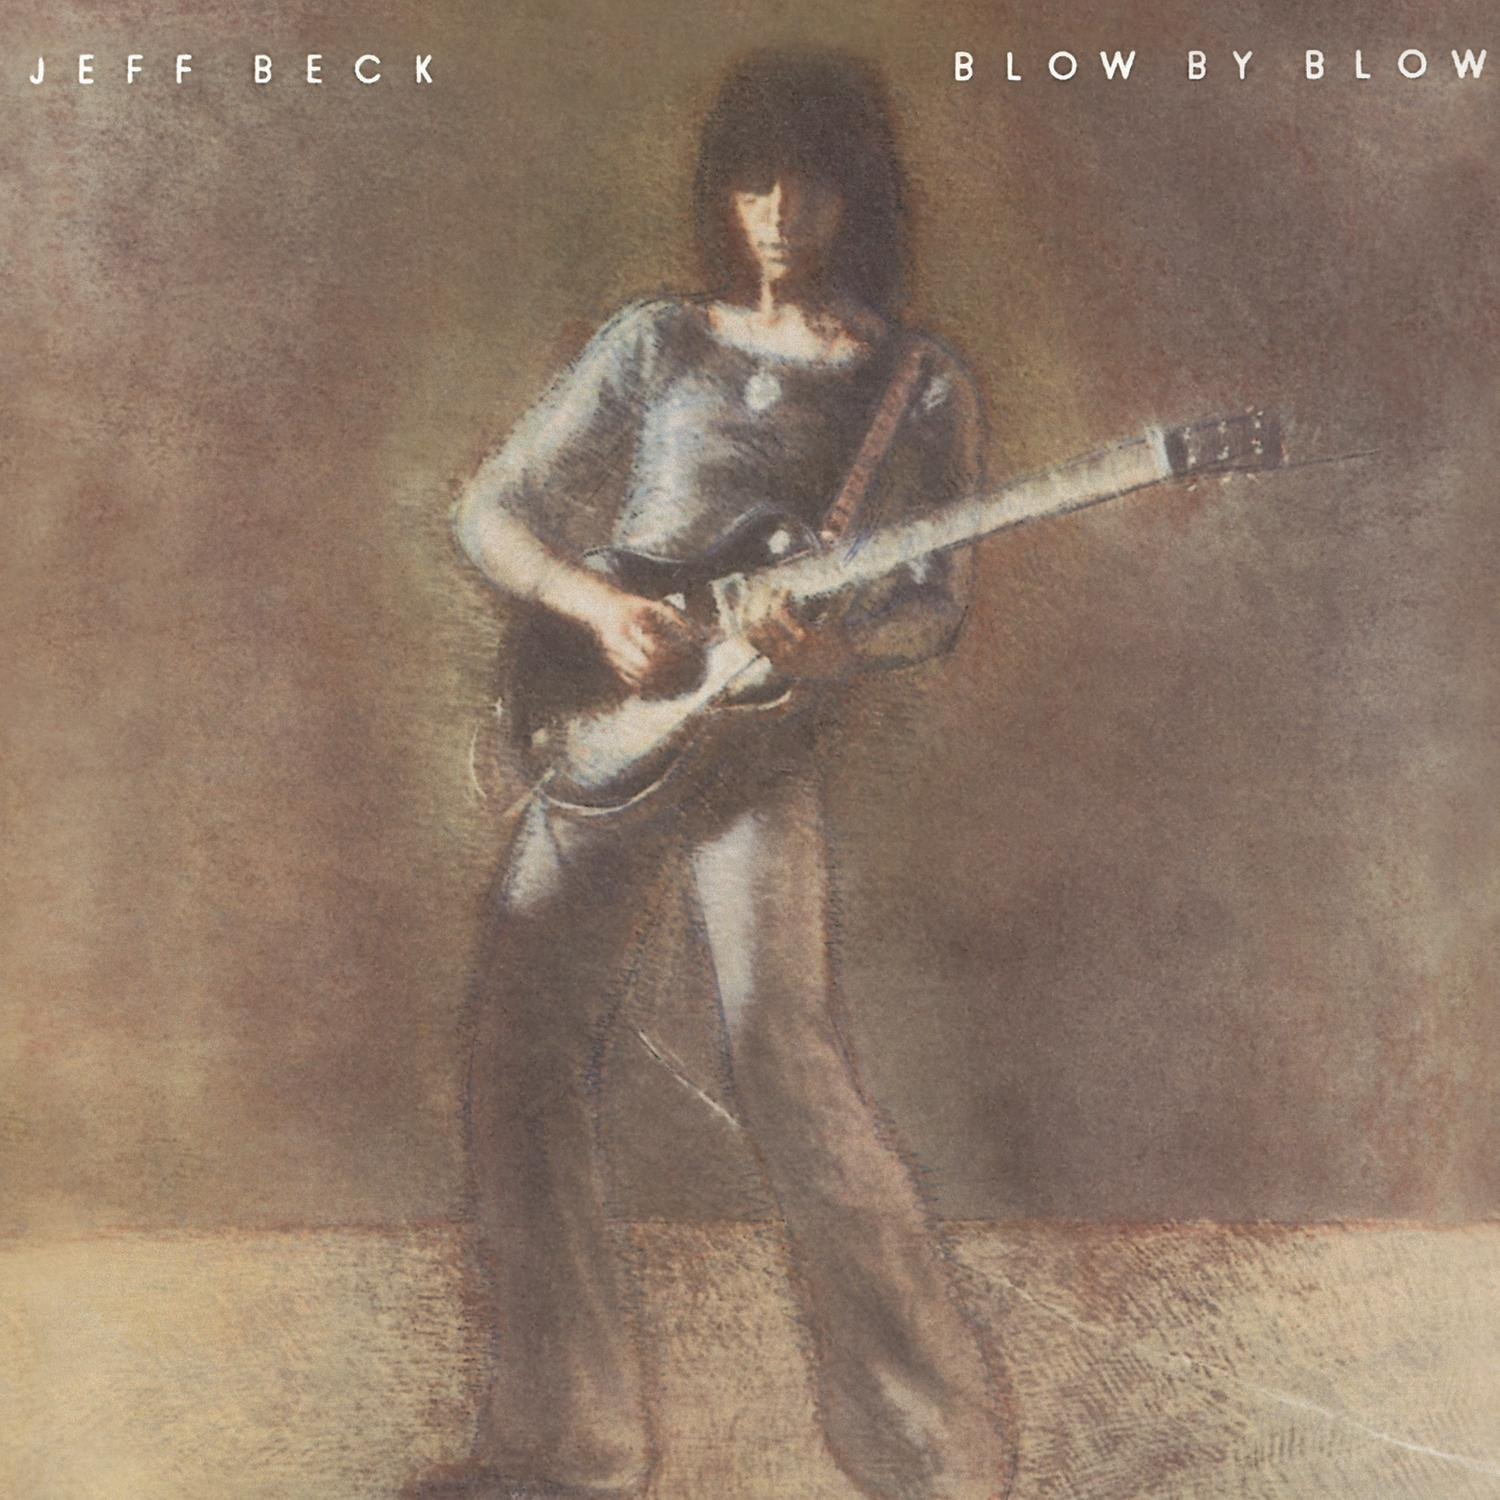 CD : Jeff Beck - Blow By Blow (Remastered)